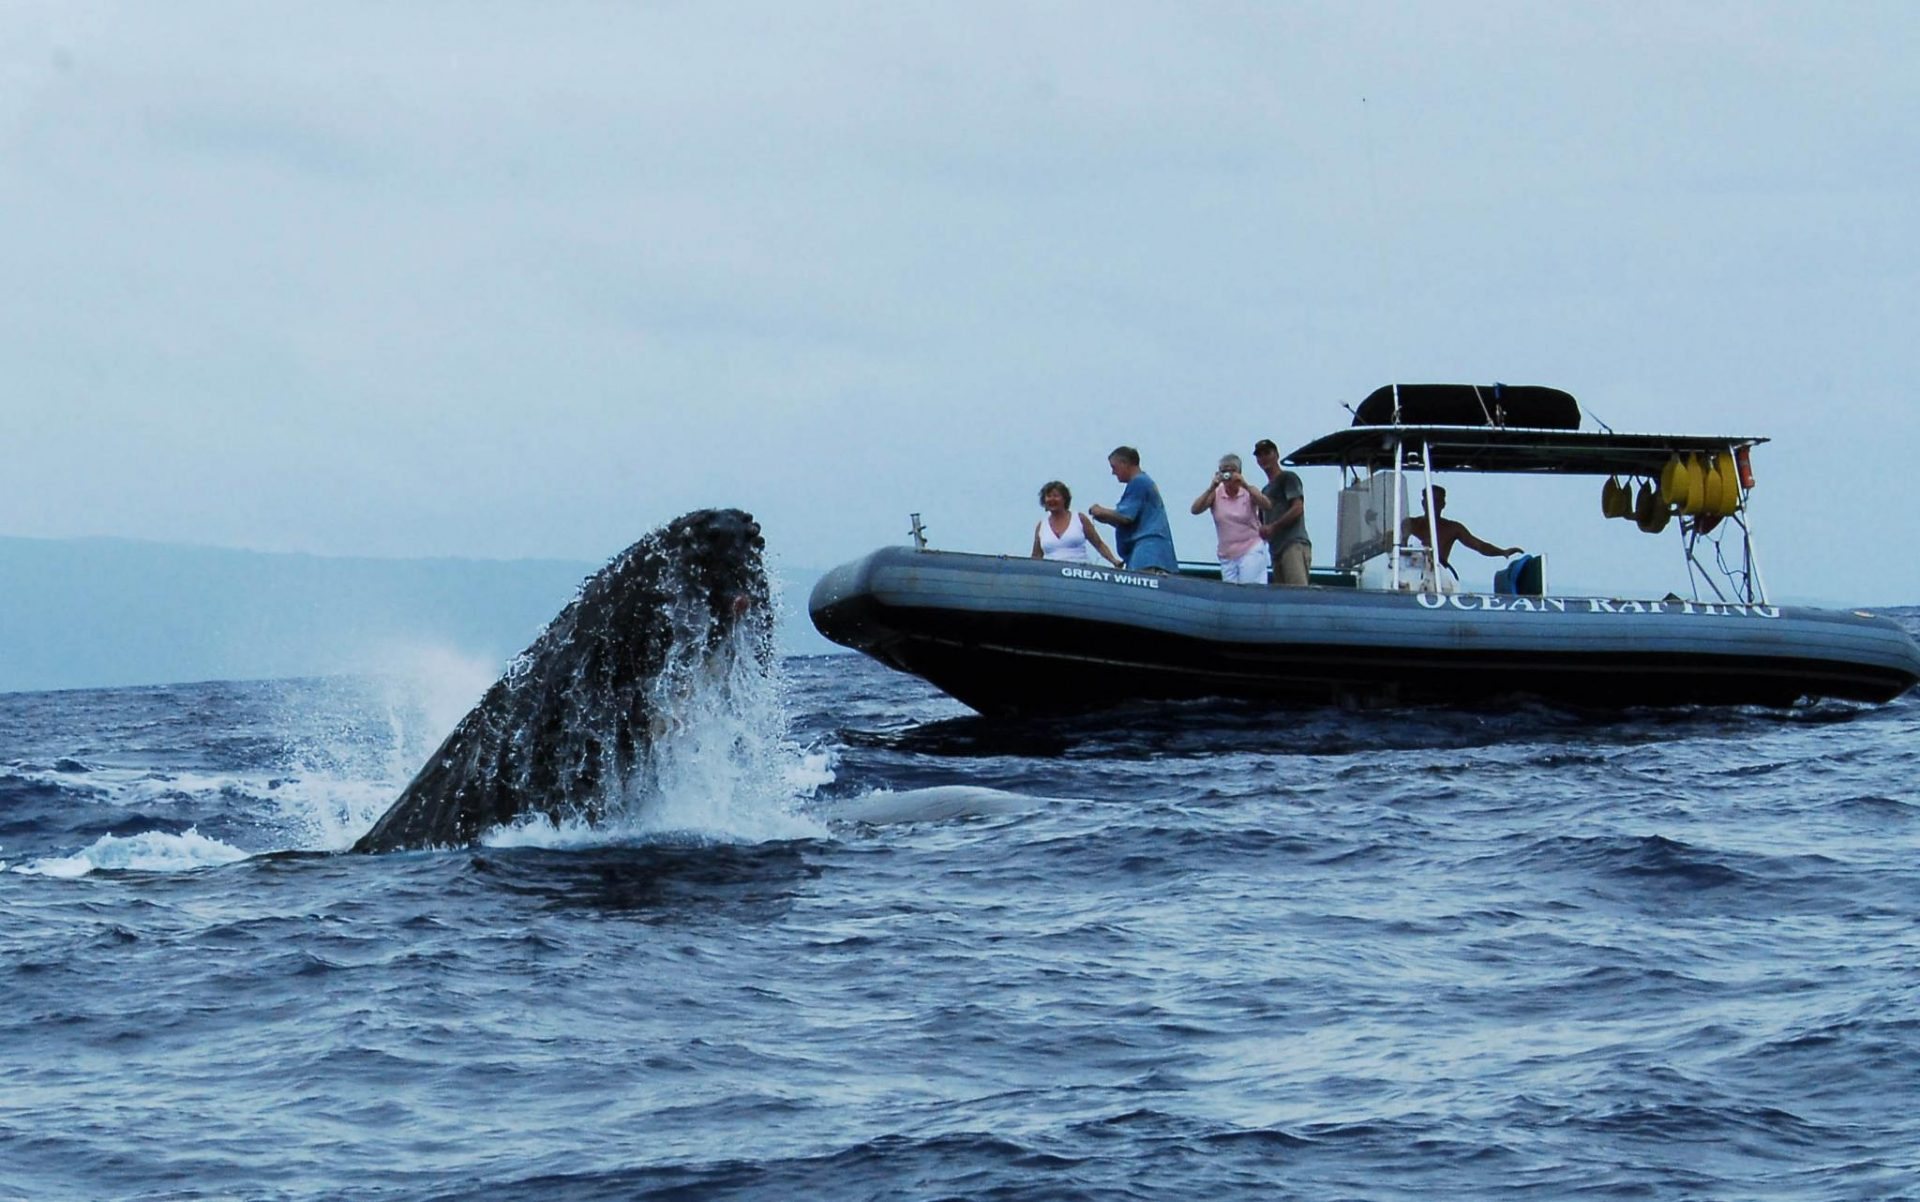 Best Whale Watching Tour In Maui